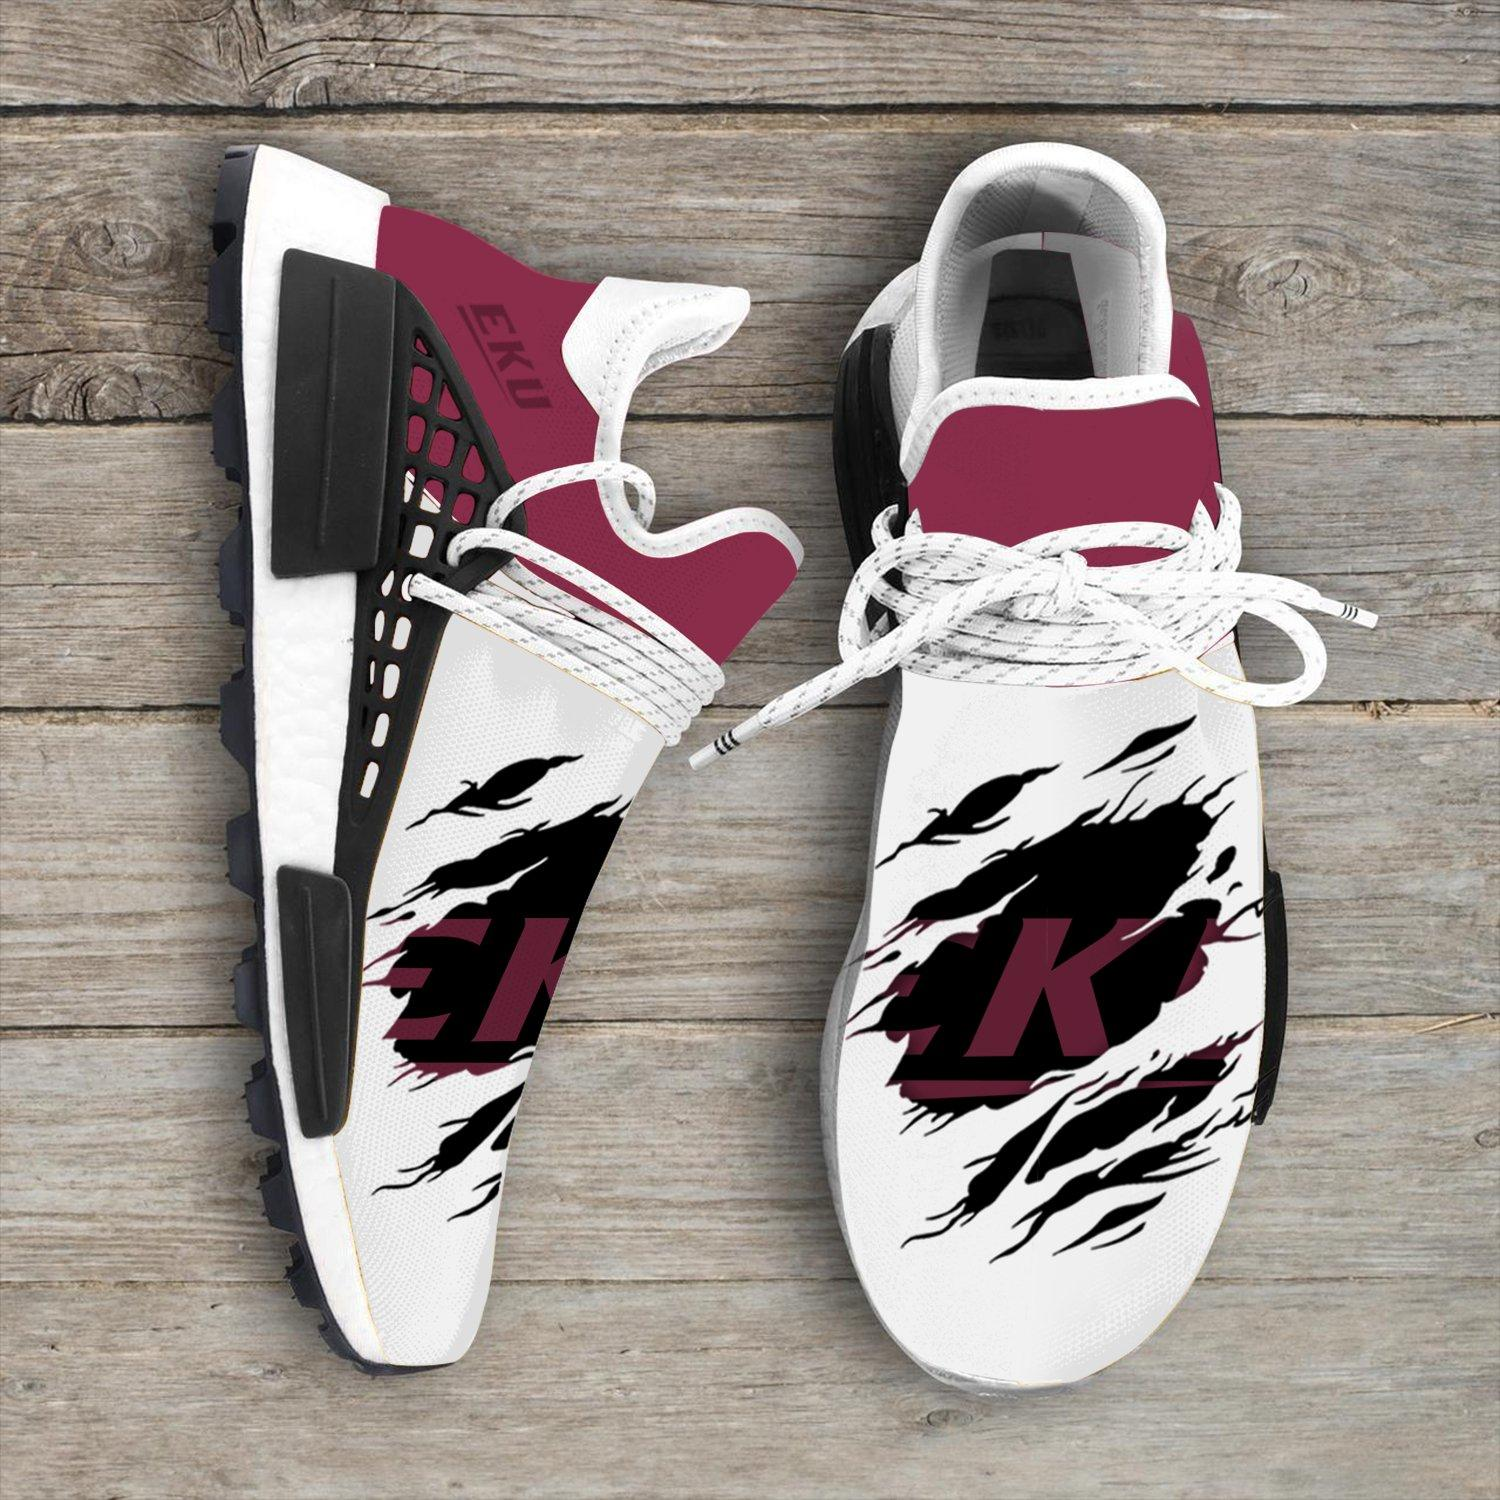 Eastern Kentucky Colonels Ncaa Sport Teams NMD Human Shoes